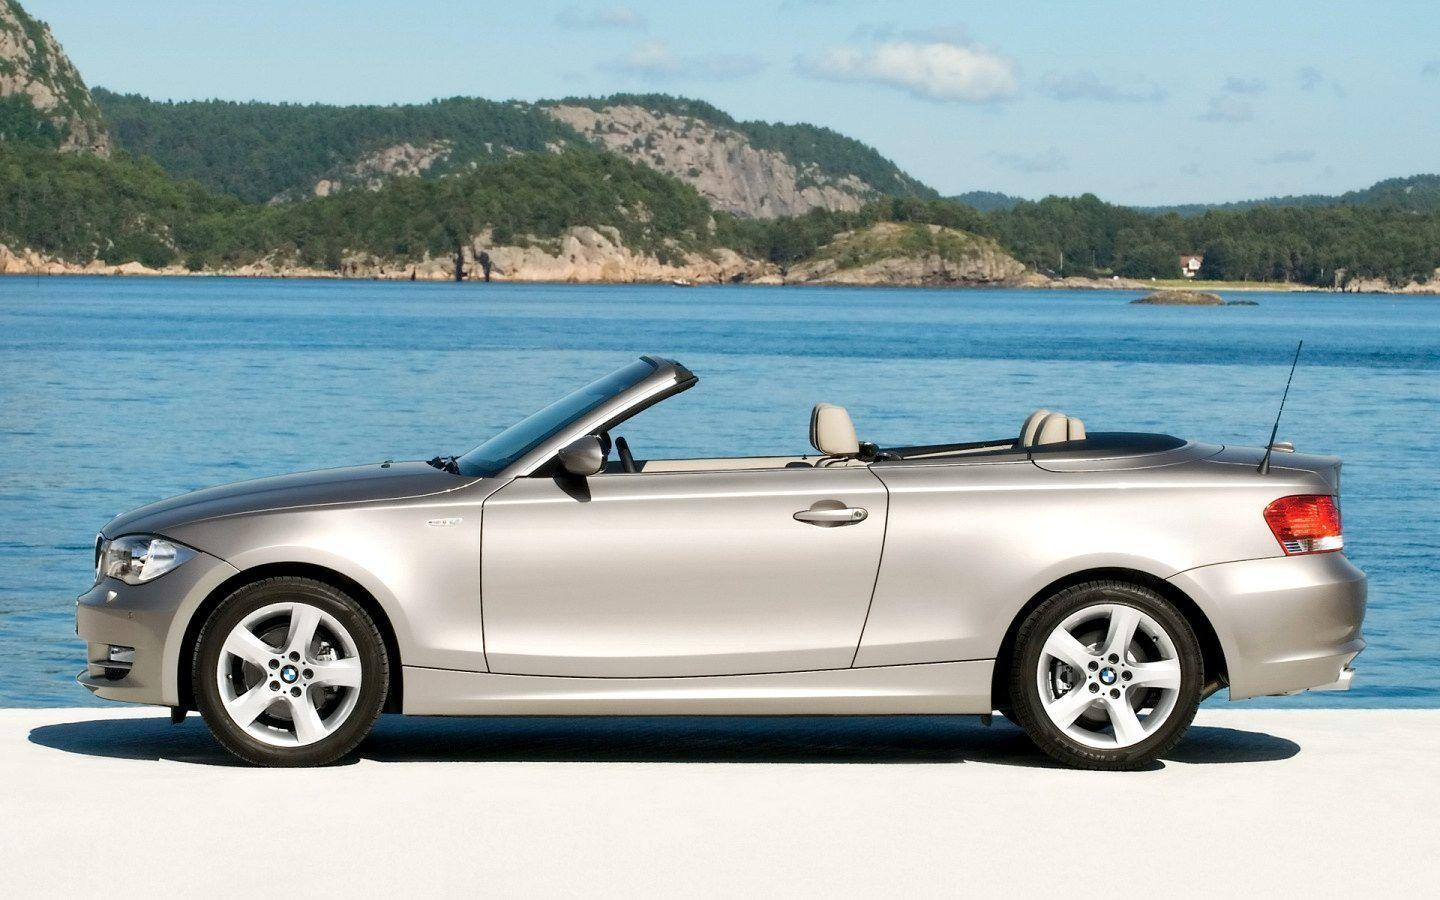 2008 BMW 1 Series Convertible Wallpaper 16 - 1440x900